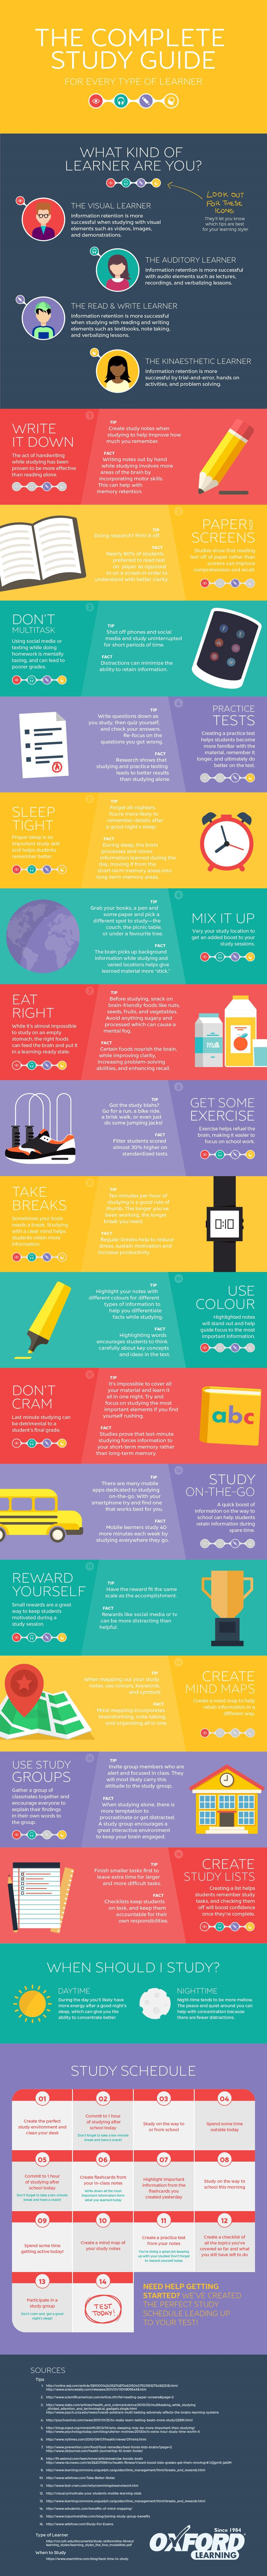 Complete Study Guide Infographic